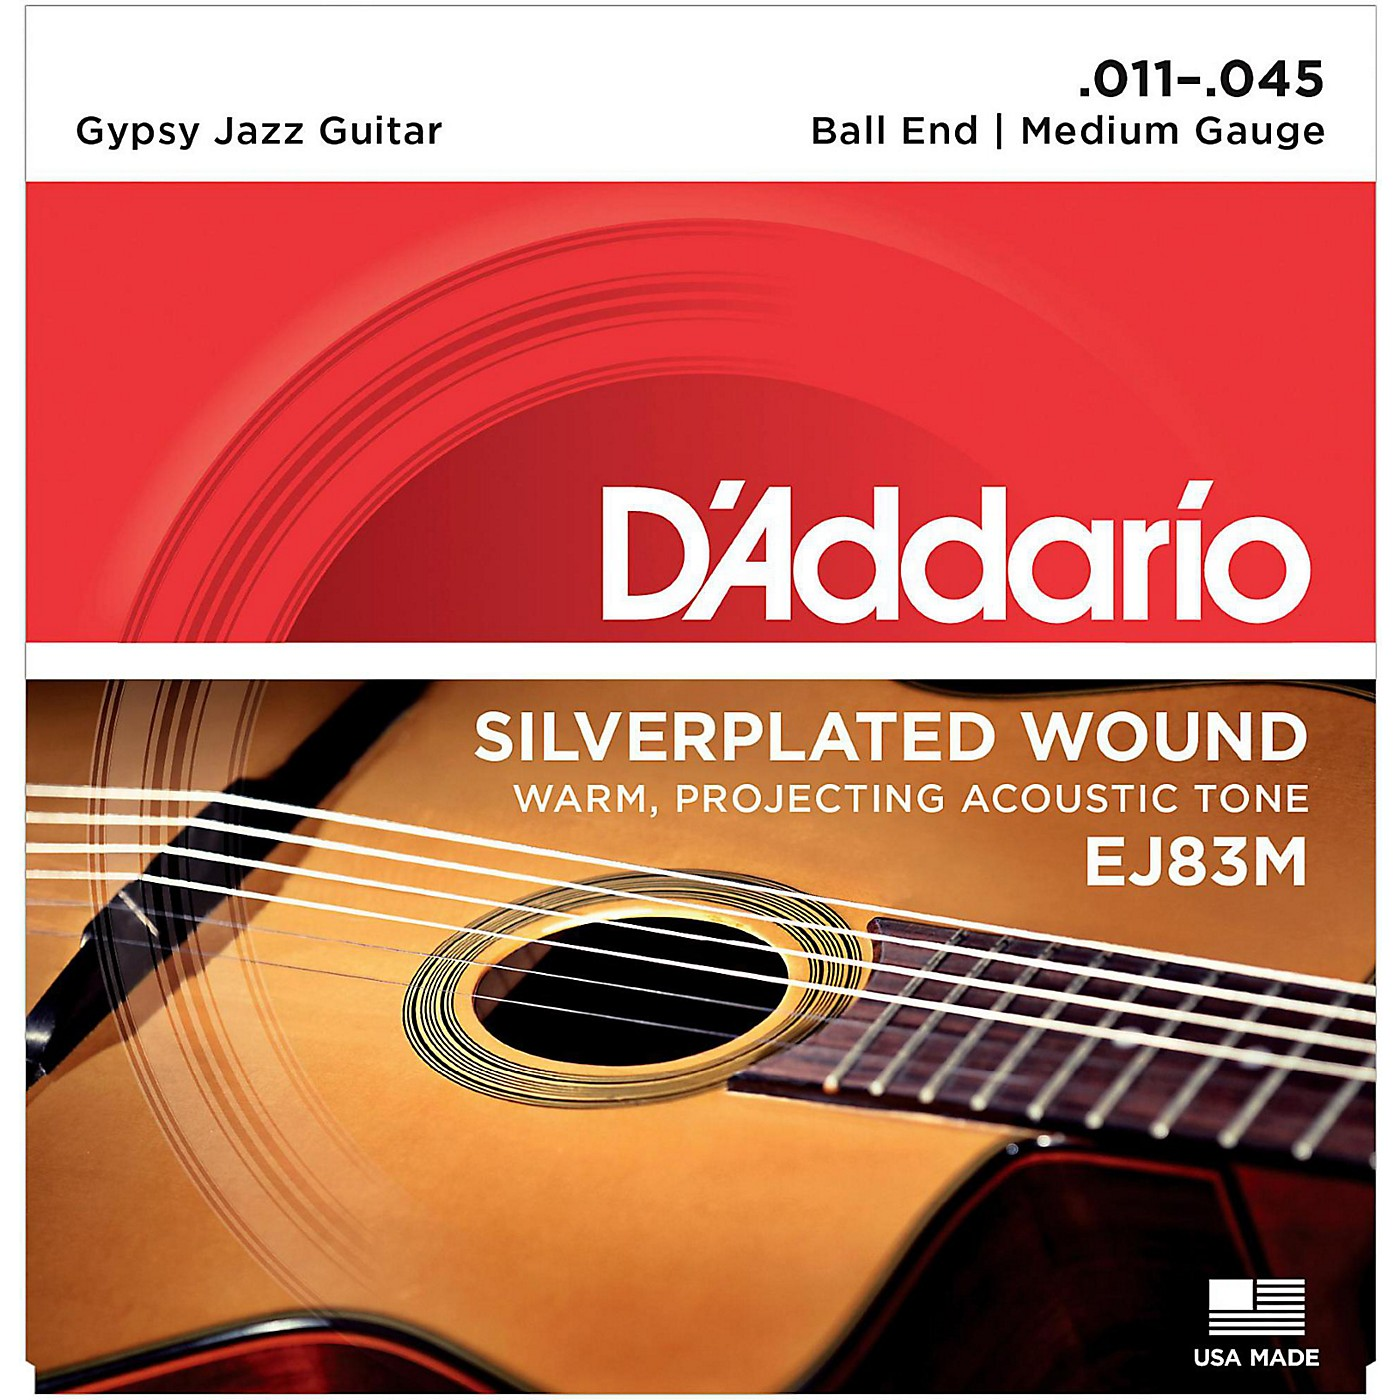 D'Addario EJ83M Gypsy Jazz Silver Wound Medium Acoustic Guitar Strings thumbnail